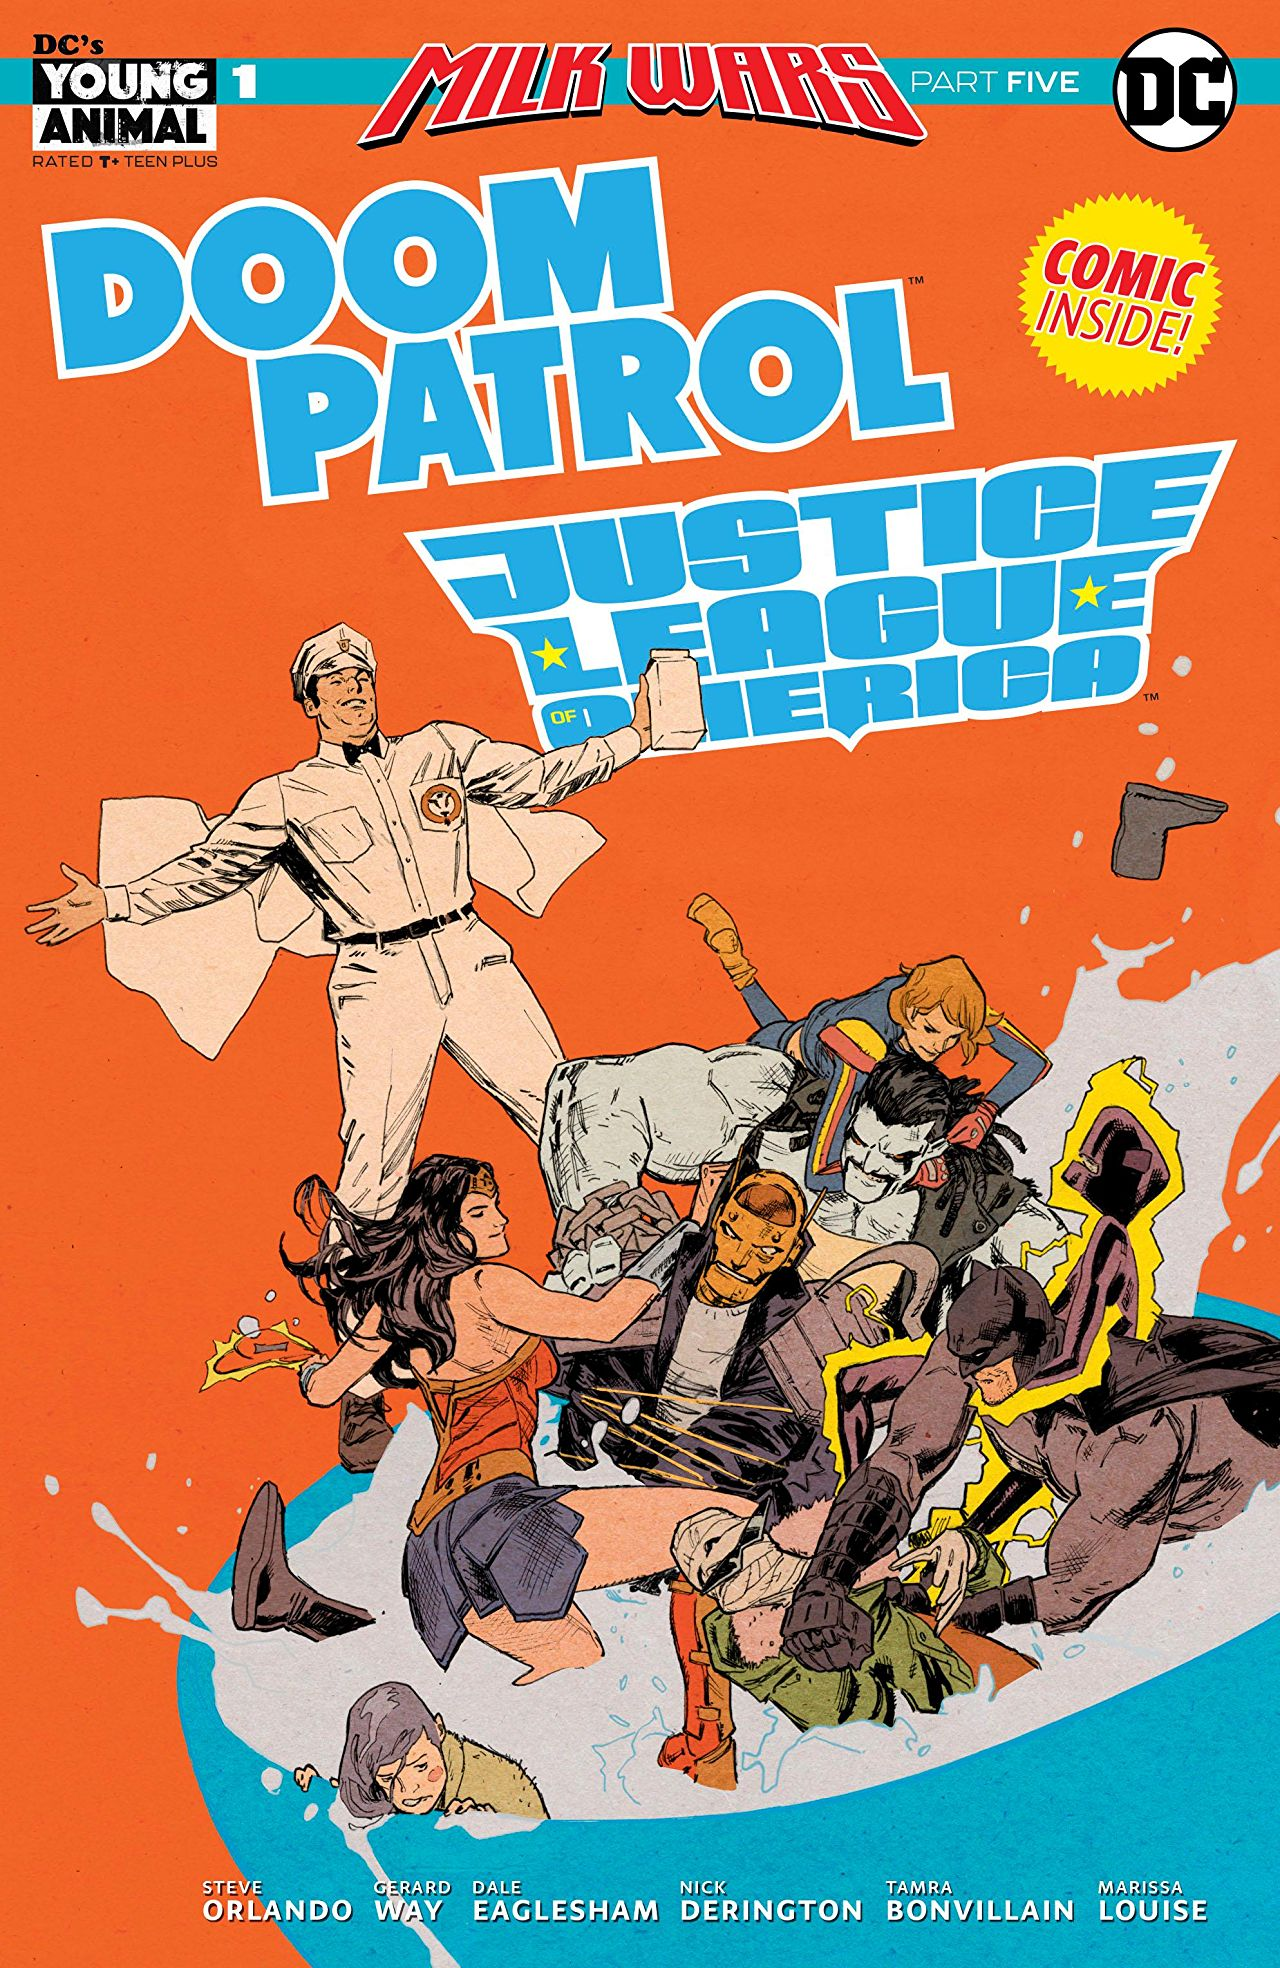 Doom Patrol/Justice League of America Special #1 Review: Milk Wars ends here!